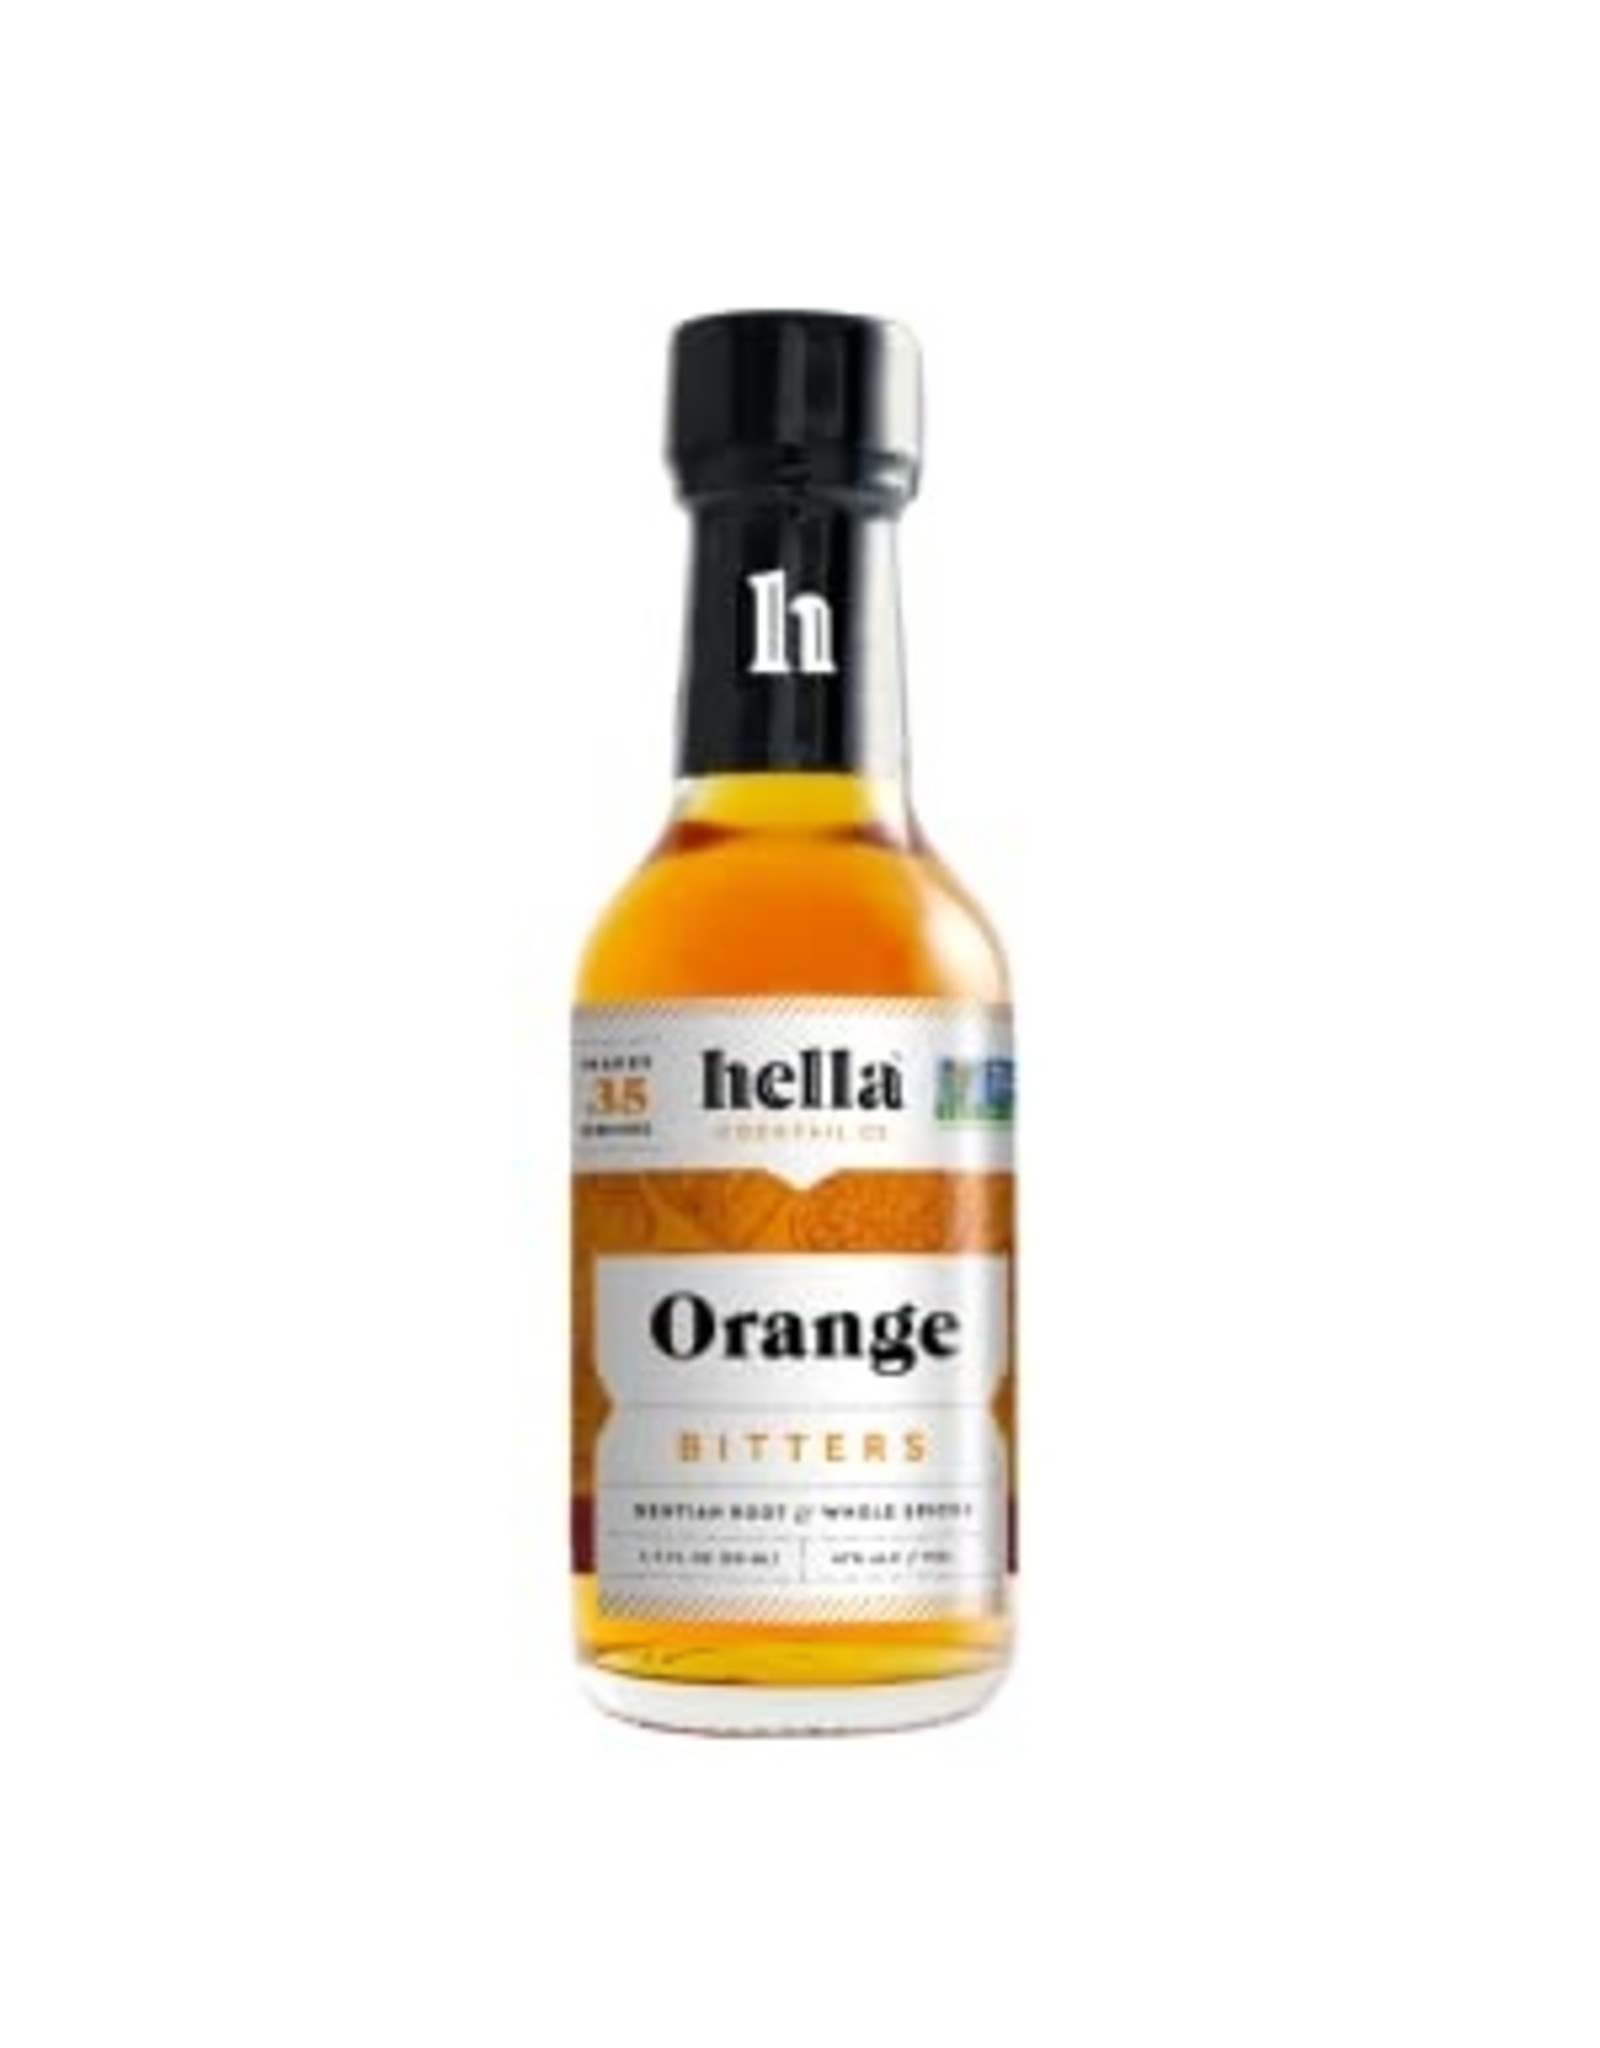 Hella Cocktail Co. Aromatic and Orange Bitters Pack